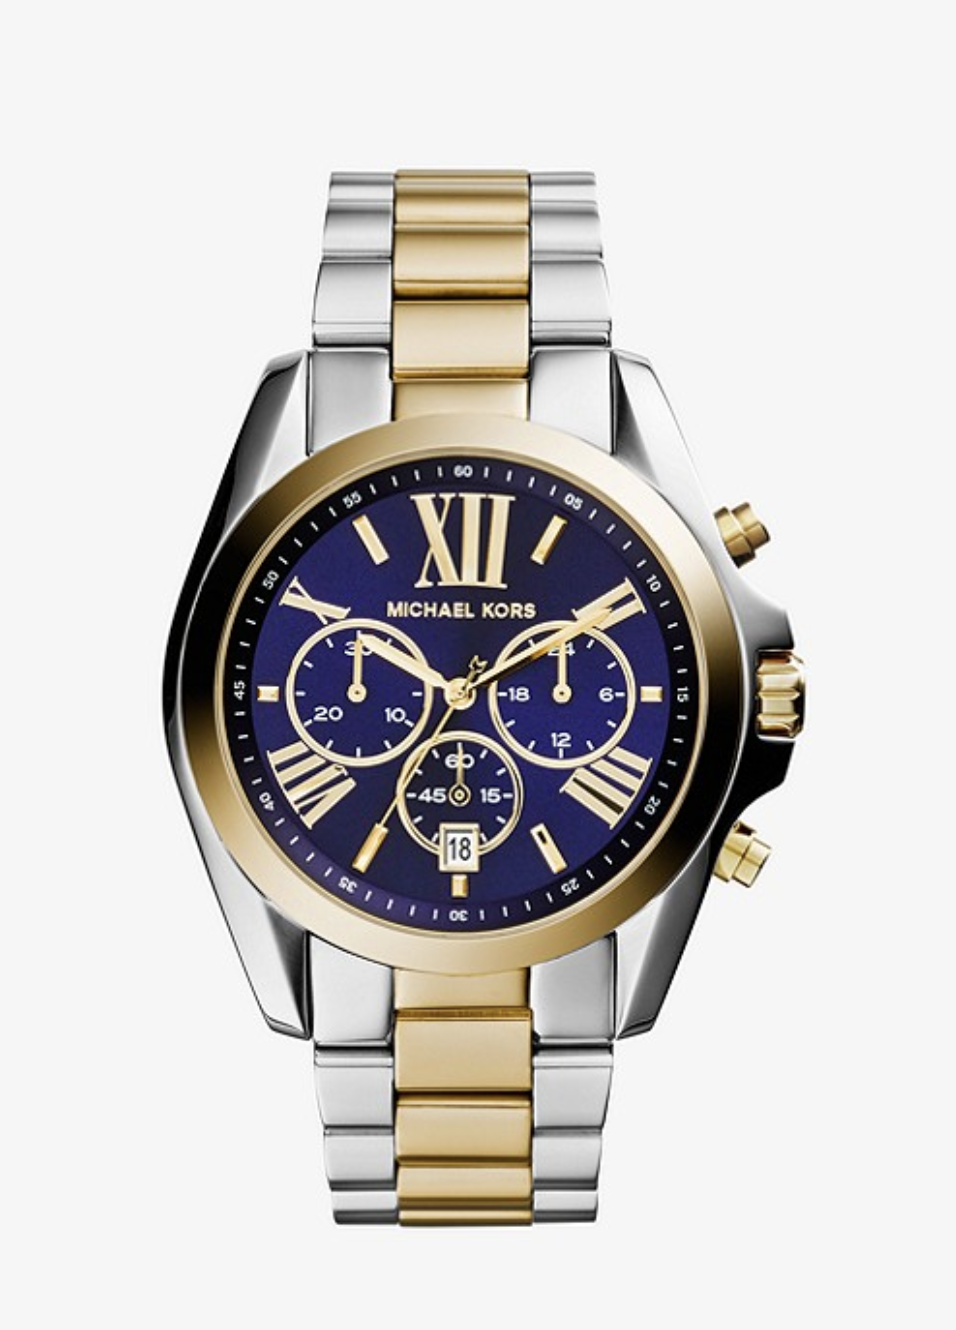 WATCH - Whether she likes silver, gold, or the two-toned look, a watch is always a wonderful gift. Check out this one from Michael Kors for $187.